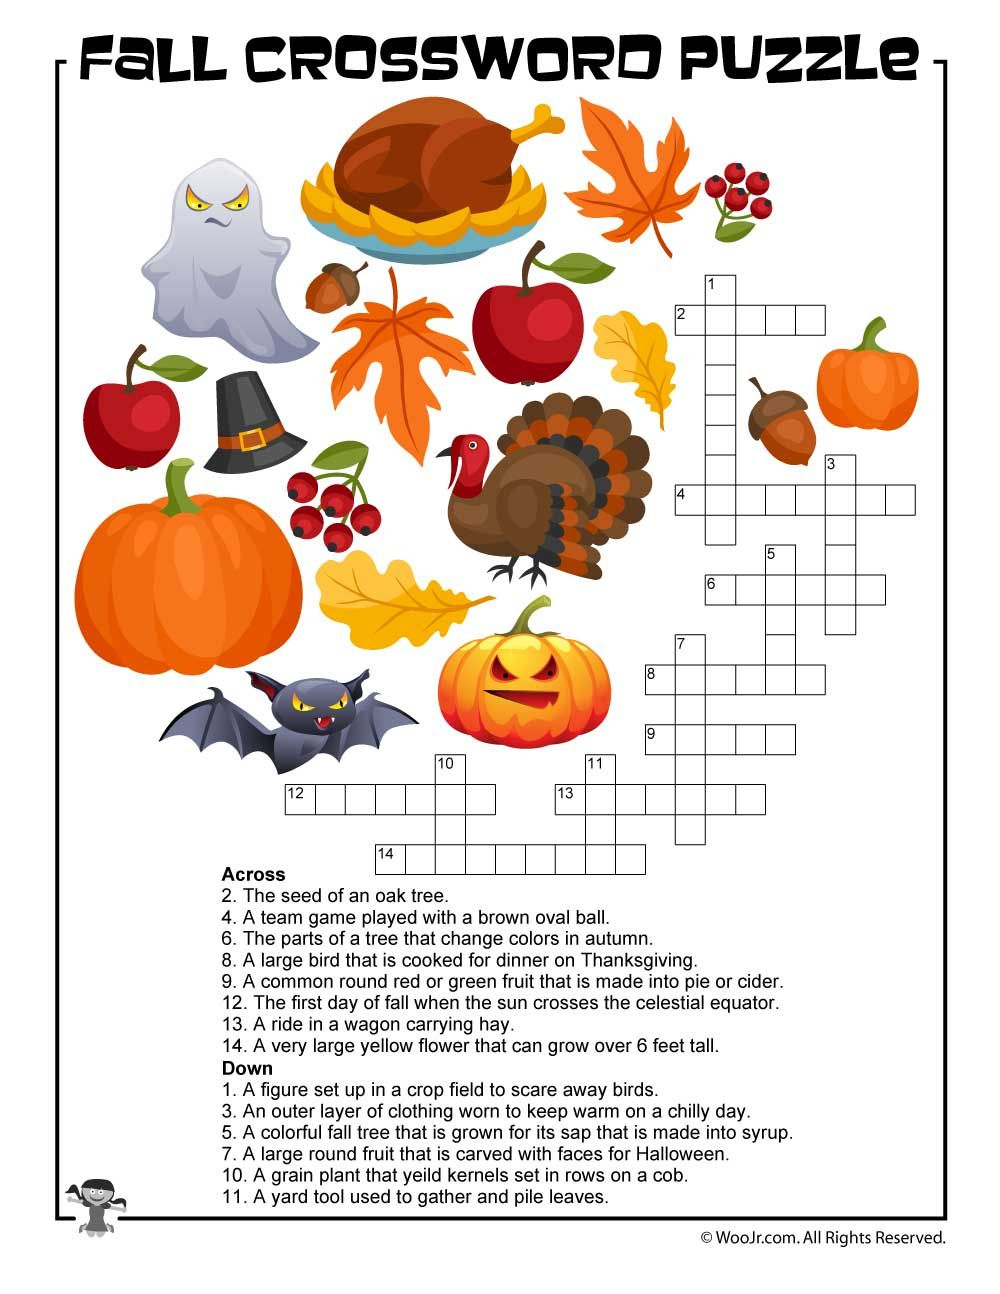 Fall Crossword Puzzle Printable | Halloween | Word Puzzles, Puzzles - Fall Crossword Puzzle Printable